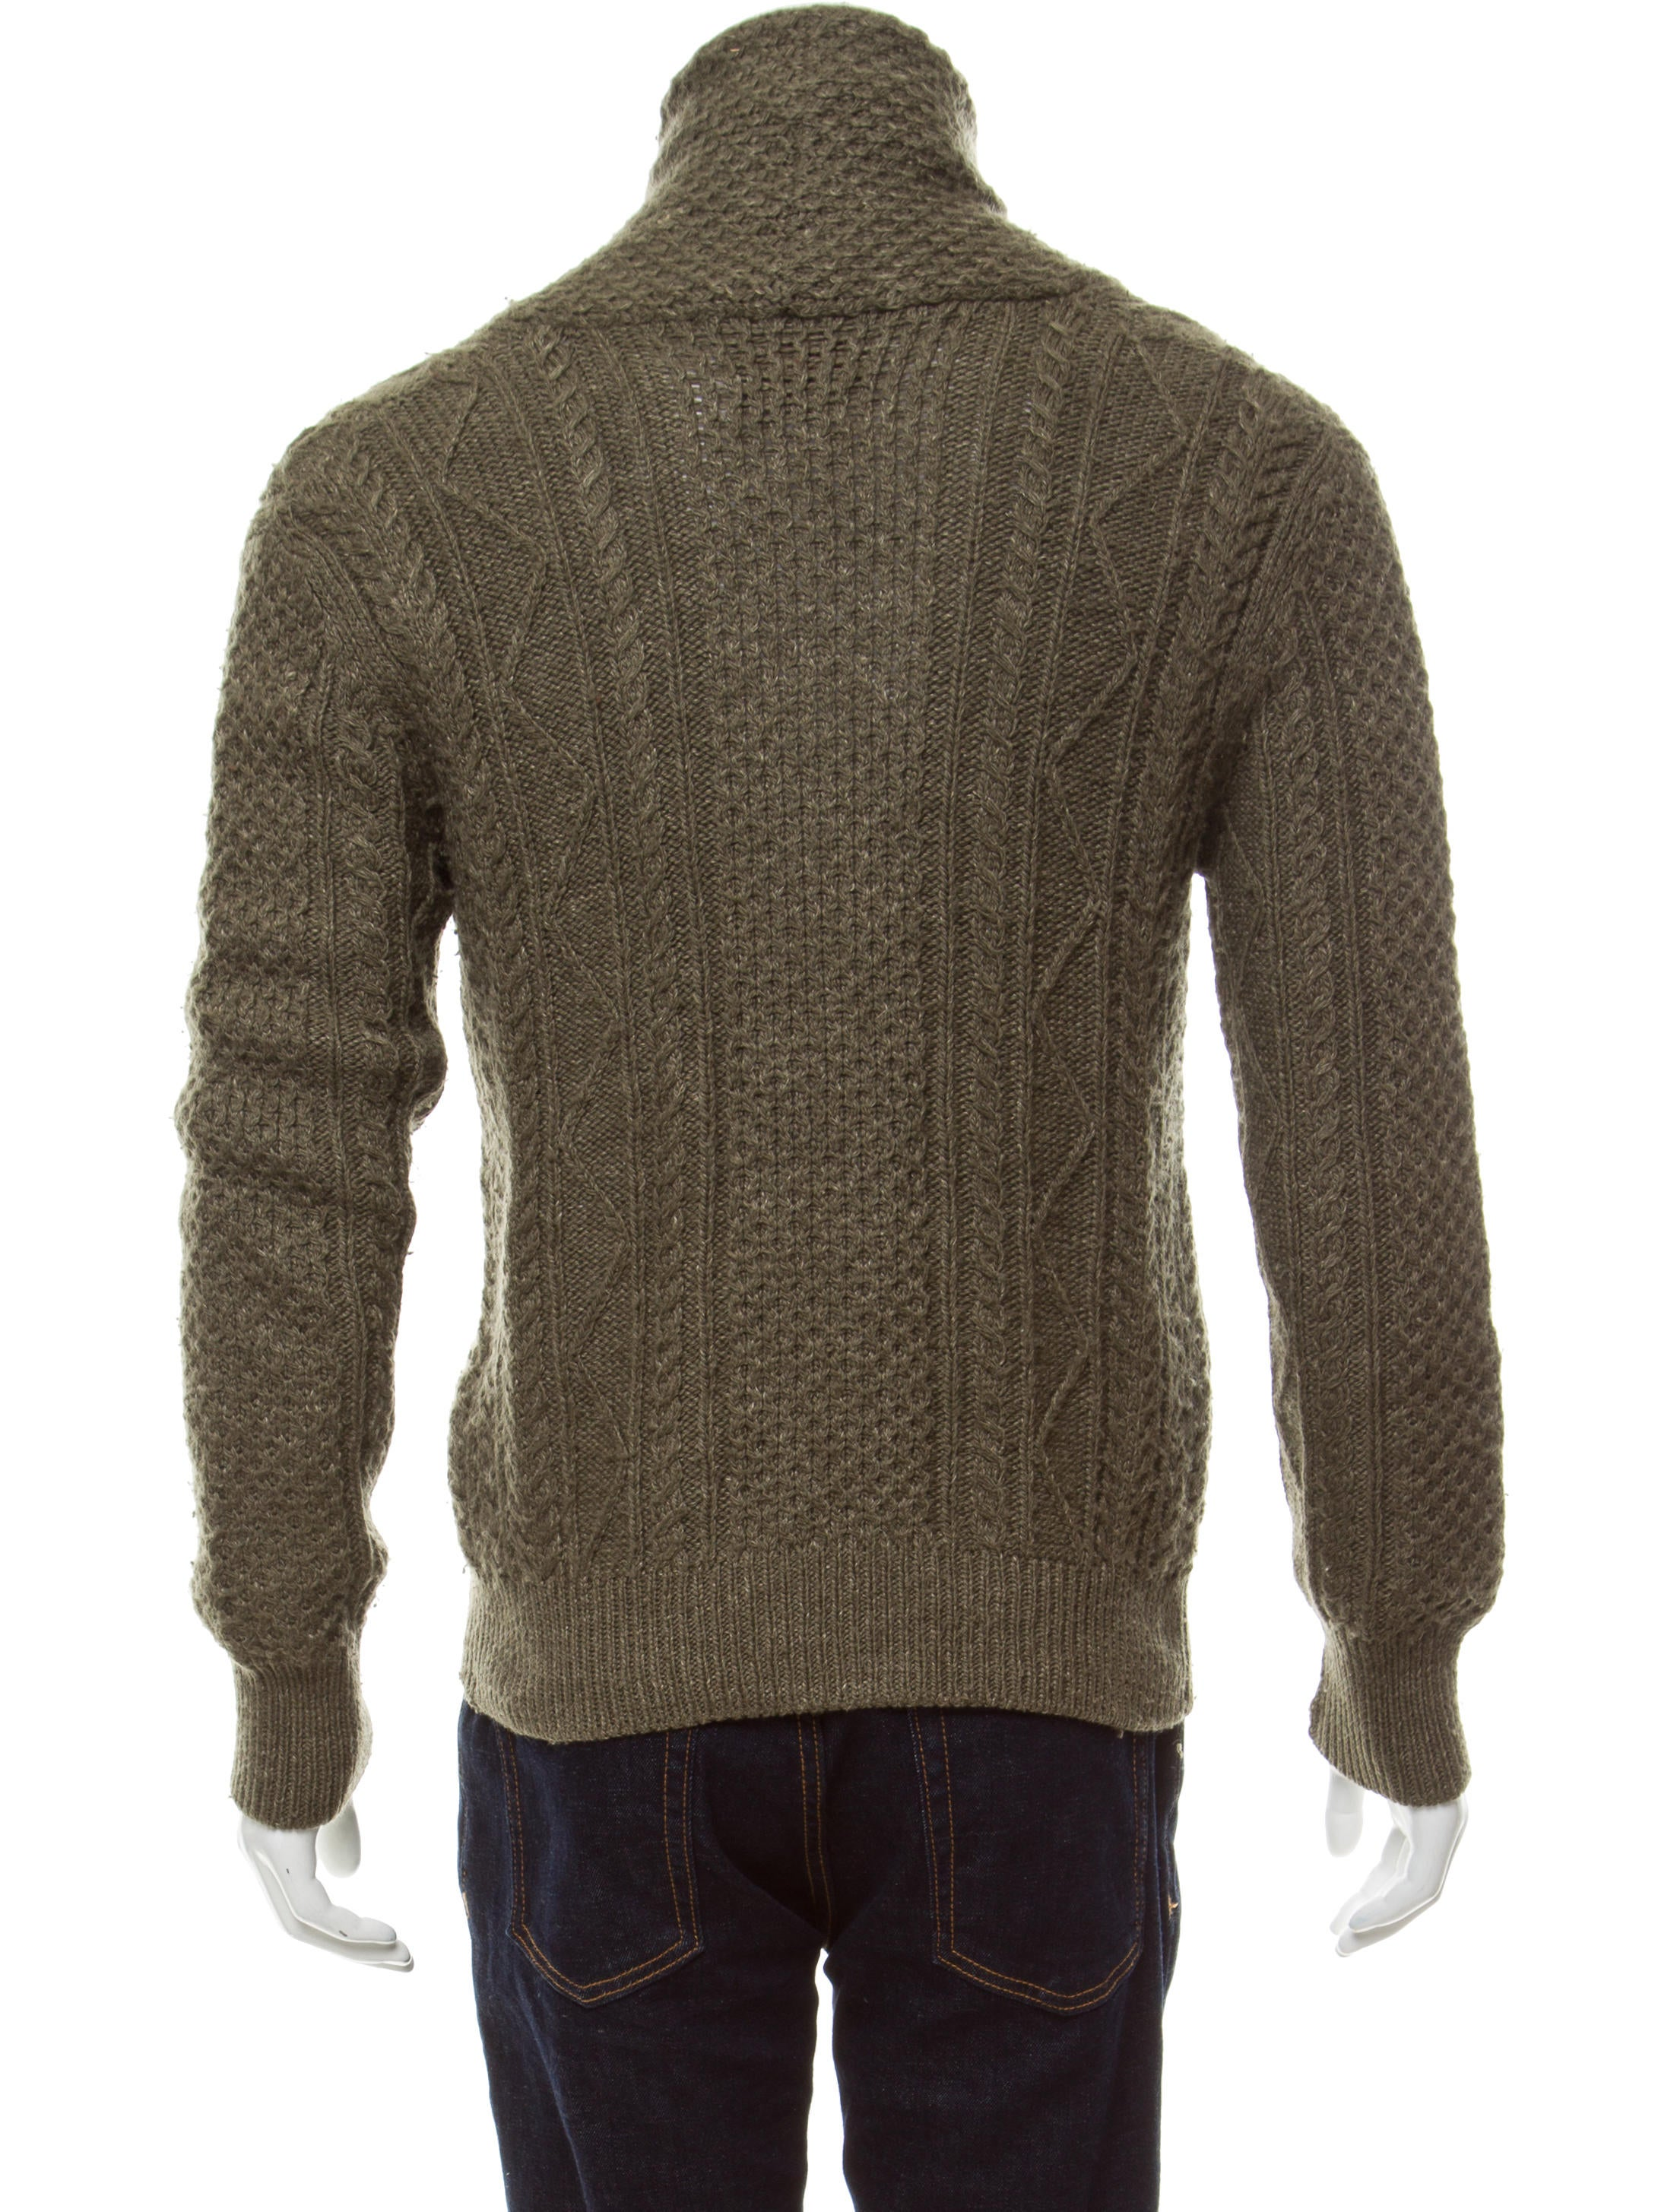 Knitting Wear Company : Rrl co wool cable knit cardigan clothing wrrll